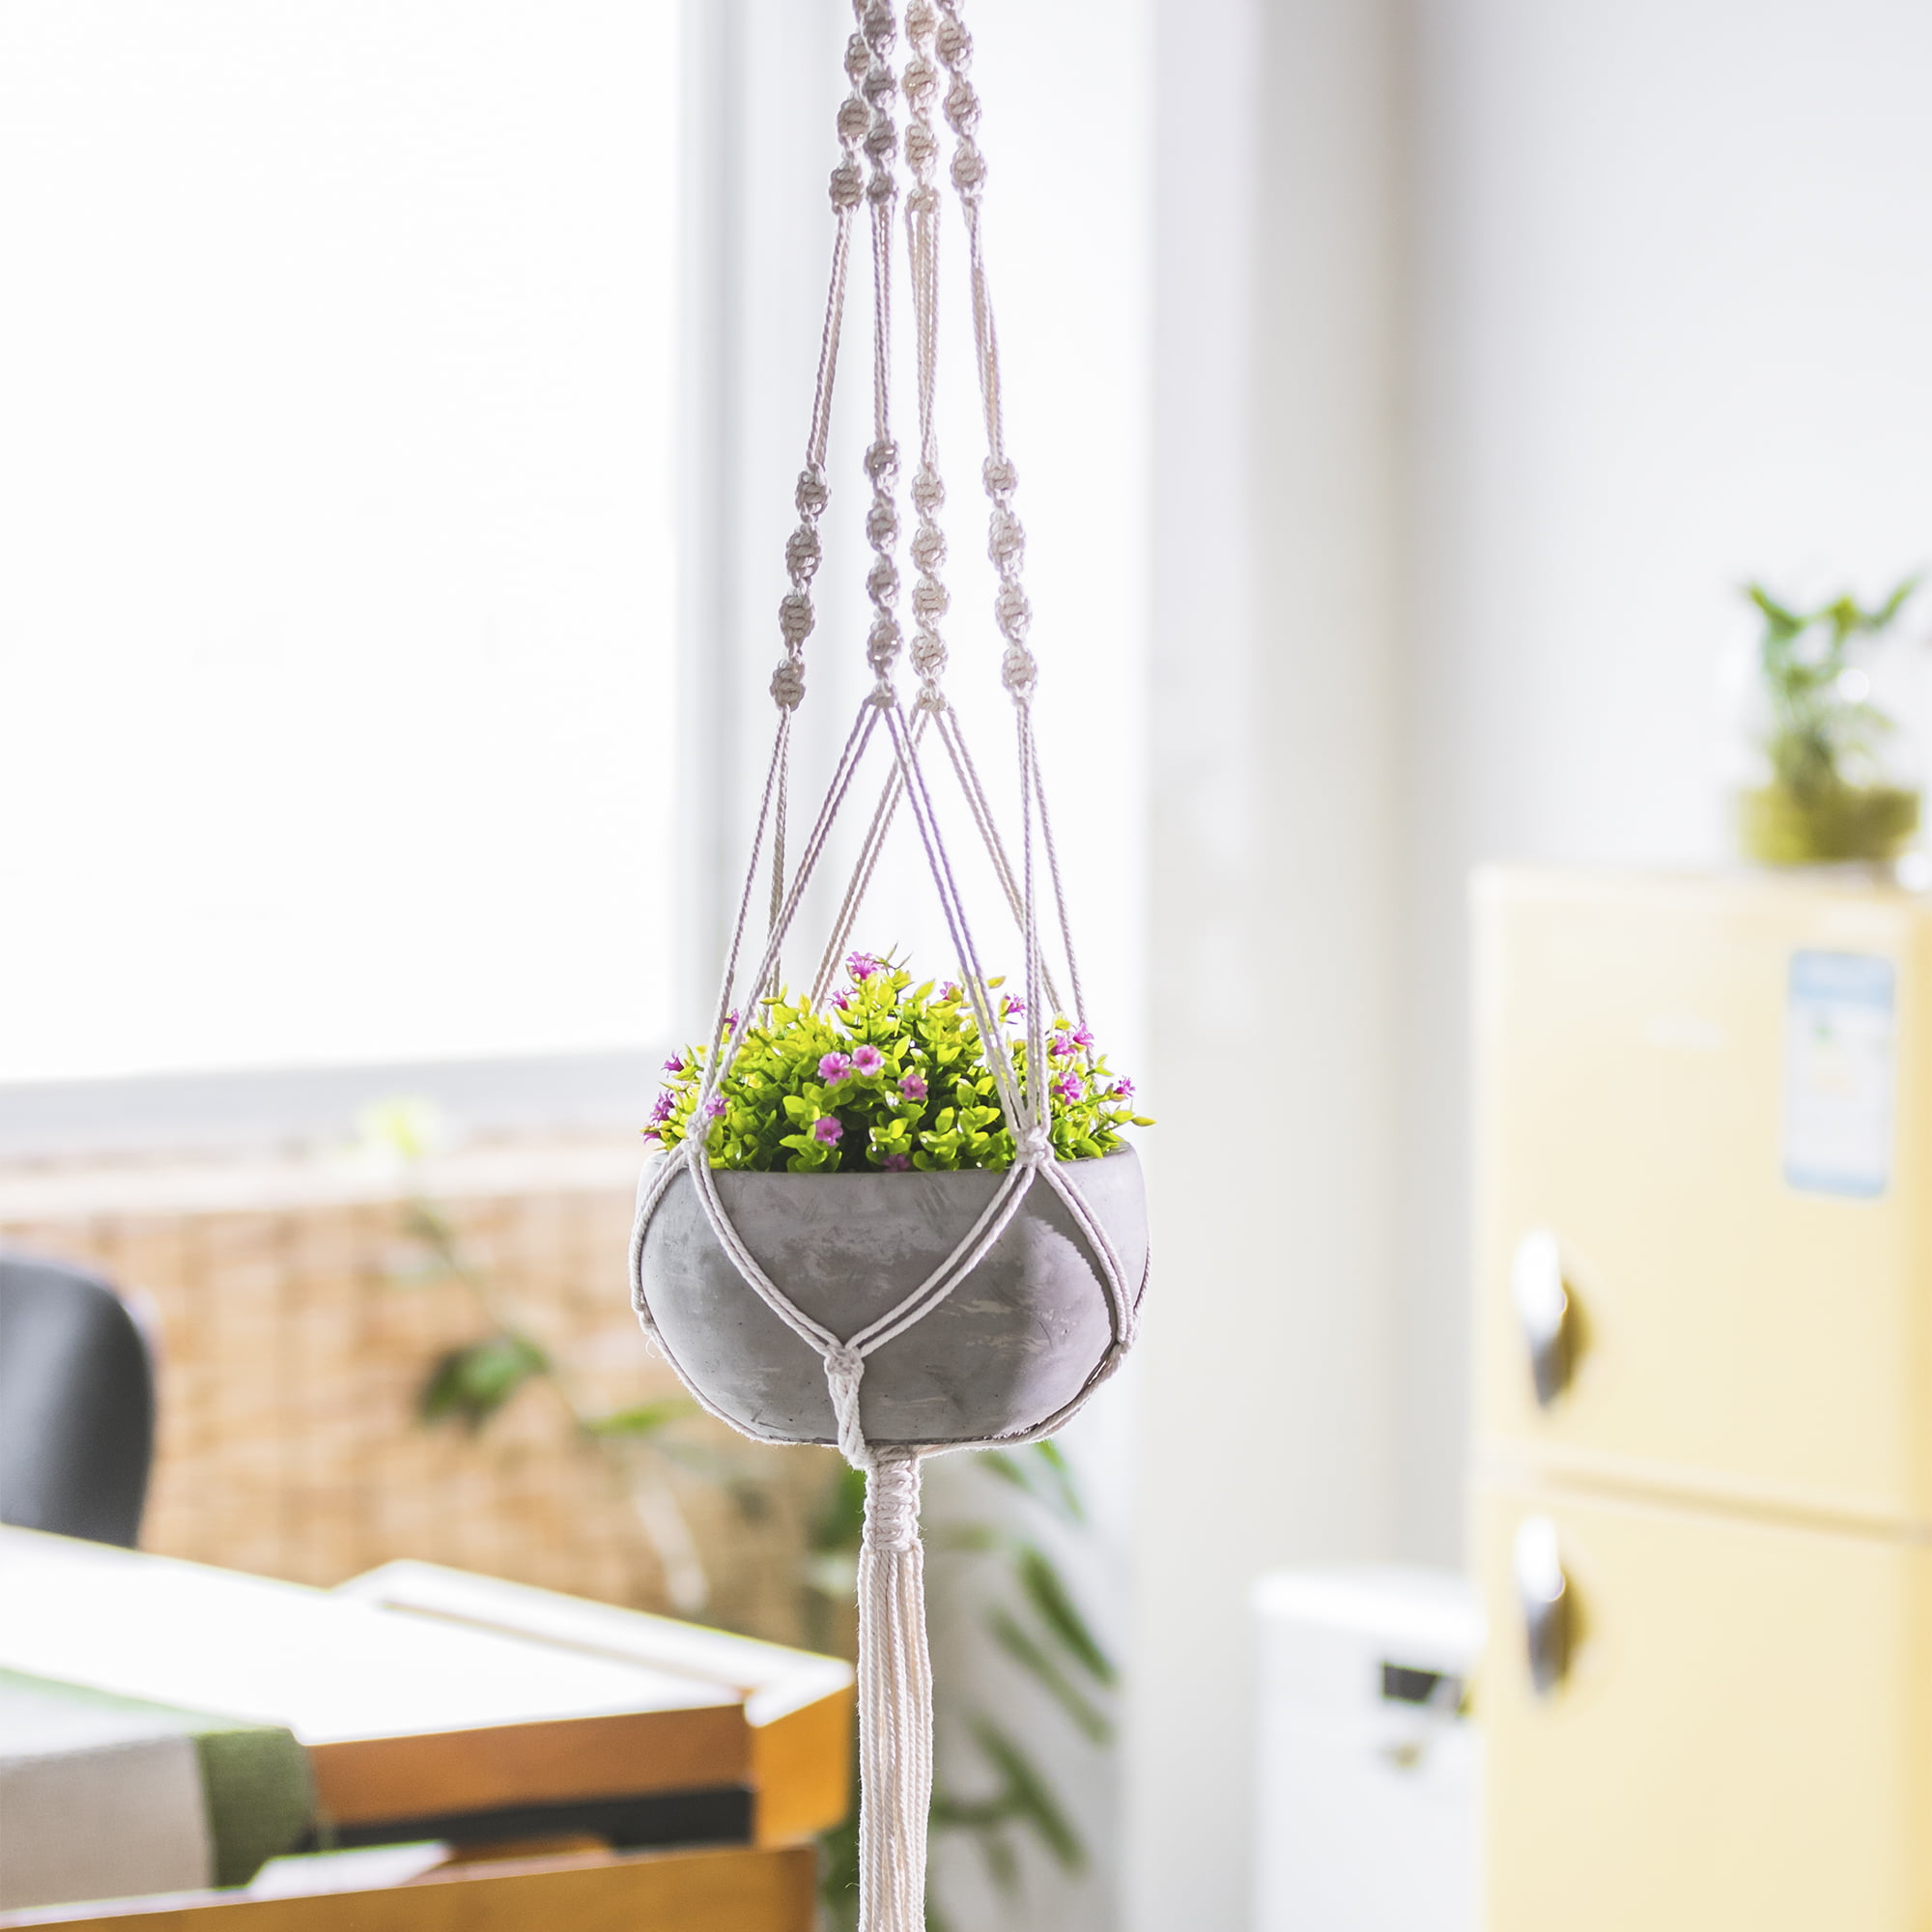 Hanging Succulent Planter Cement Planter Includes Handmade Weave Macrame For Easy Design And Beautiful Accents Walmart Com Walmart Com